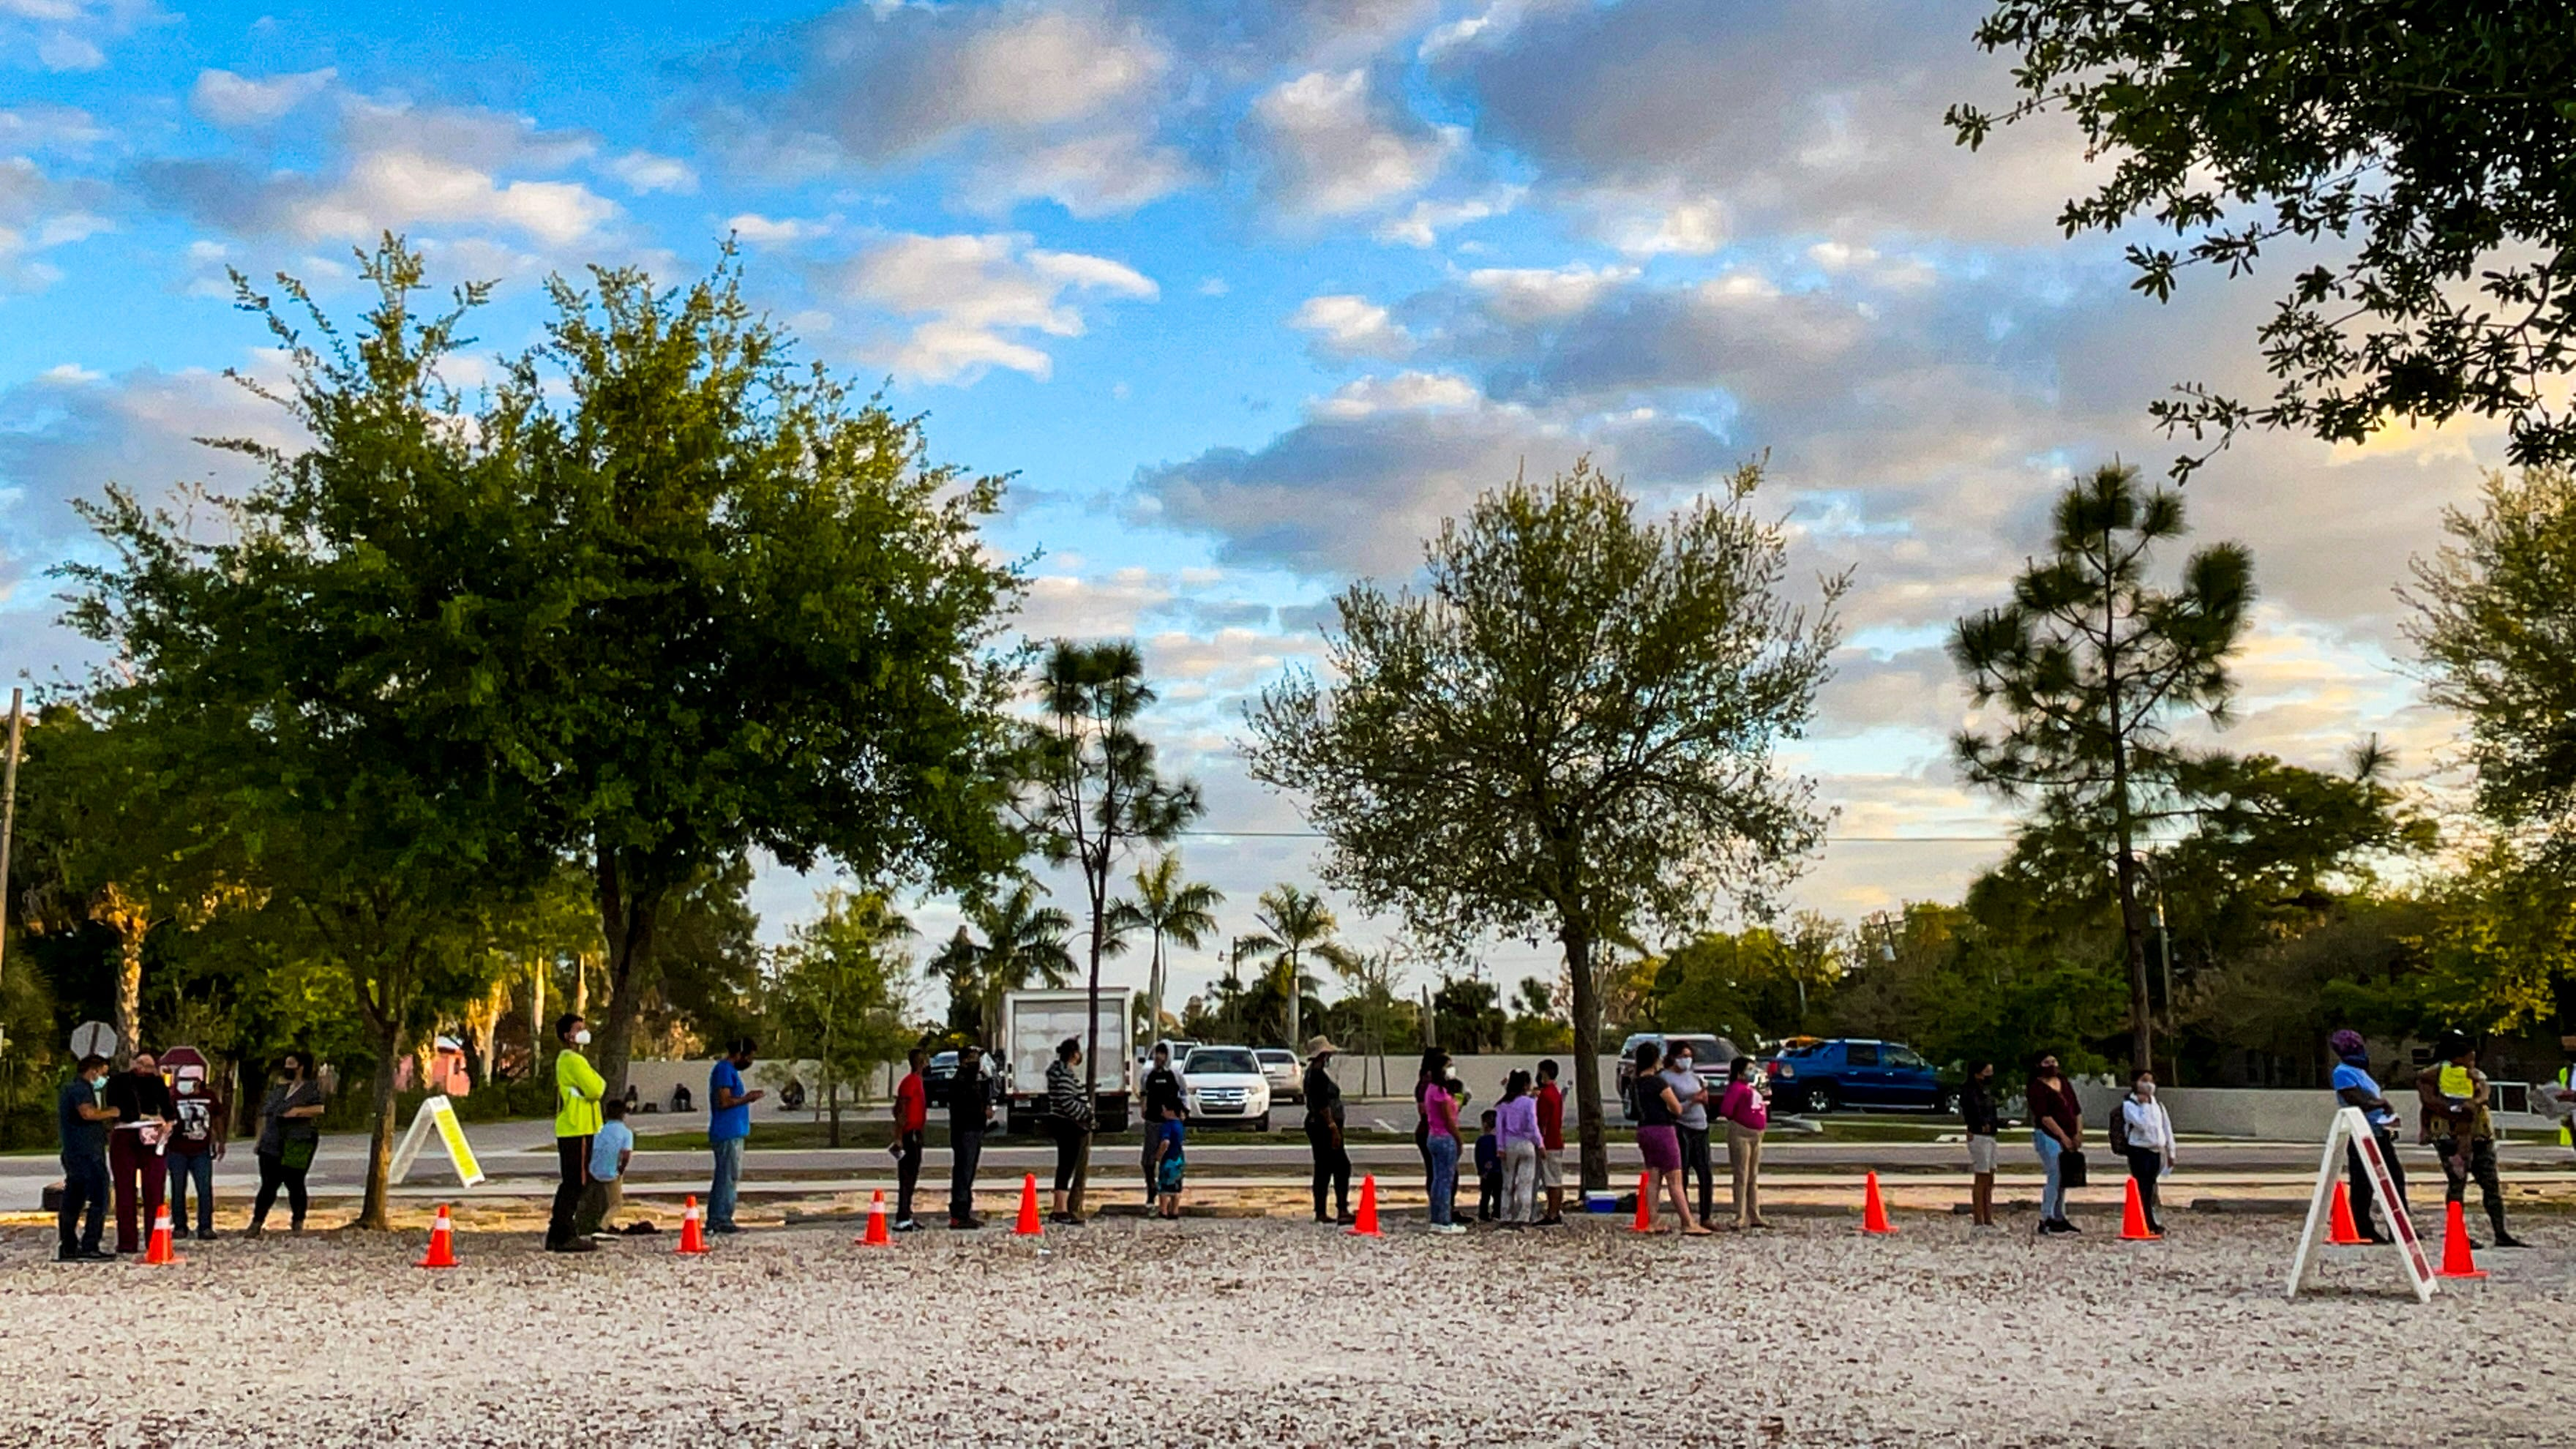 A COVID-19 testing event in Immokalee in March 2021. The Healthcare Network team sets up in a central downtown location, where buses drop off farmworkers after a day in the fields.